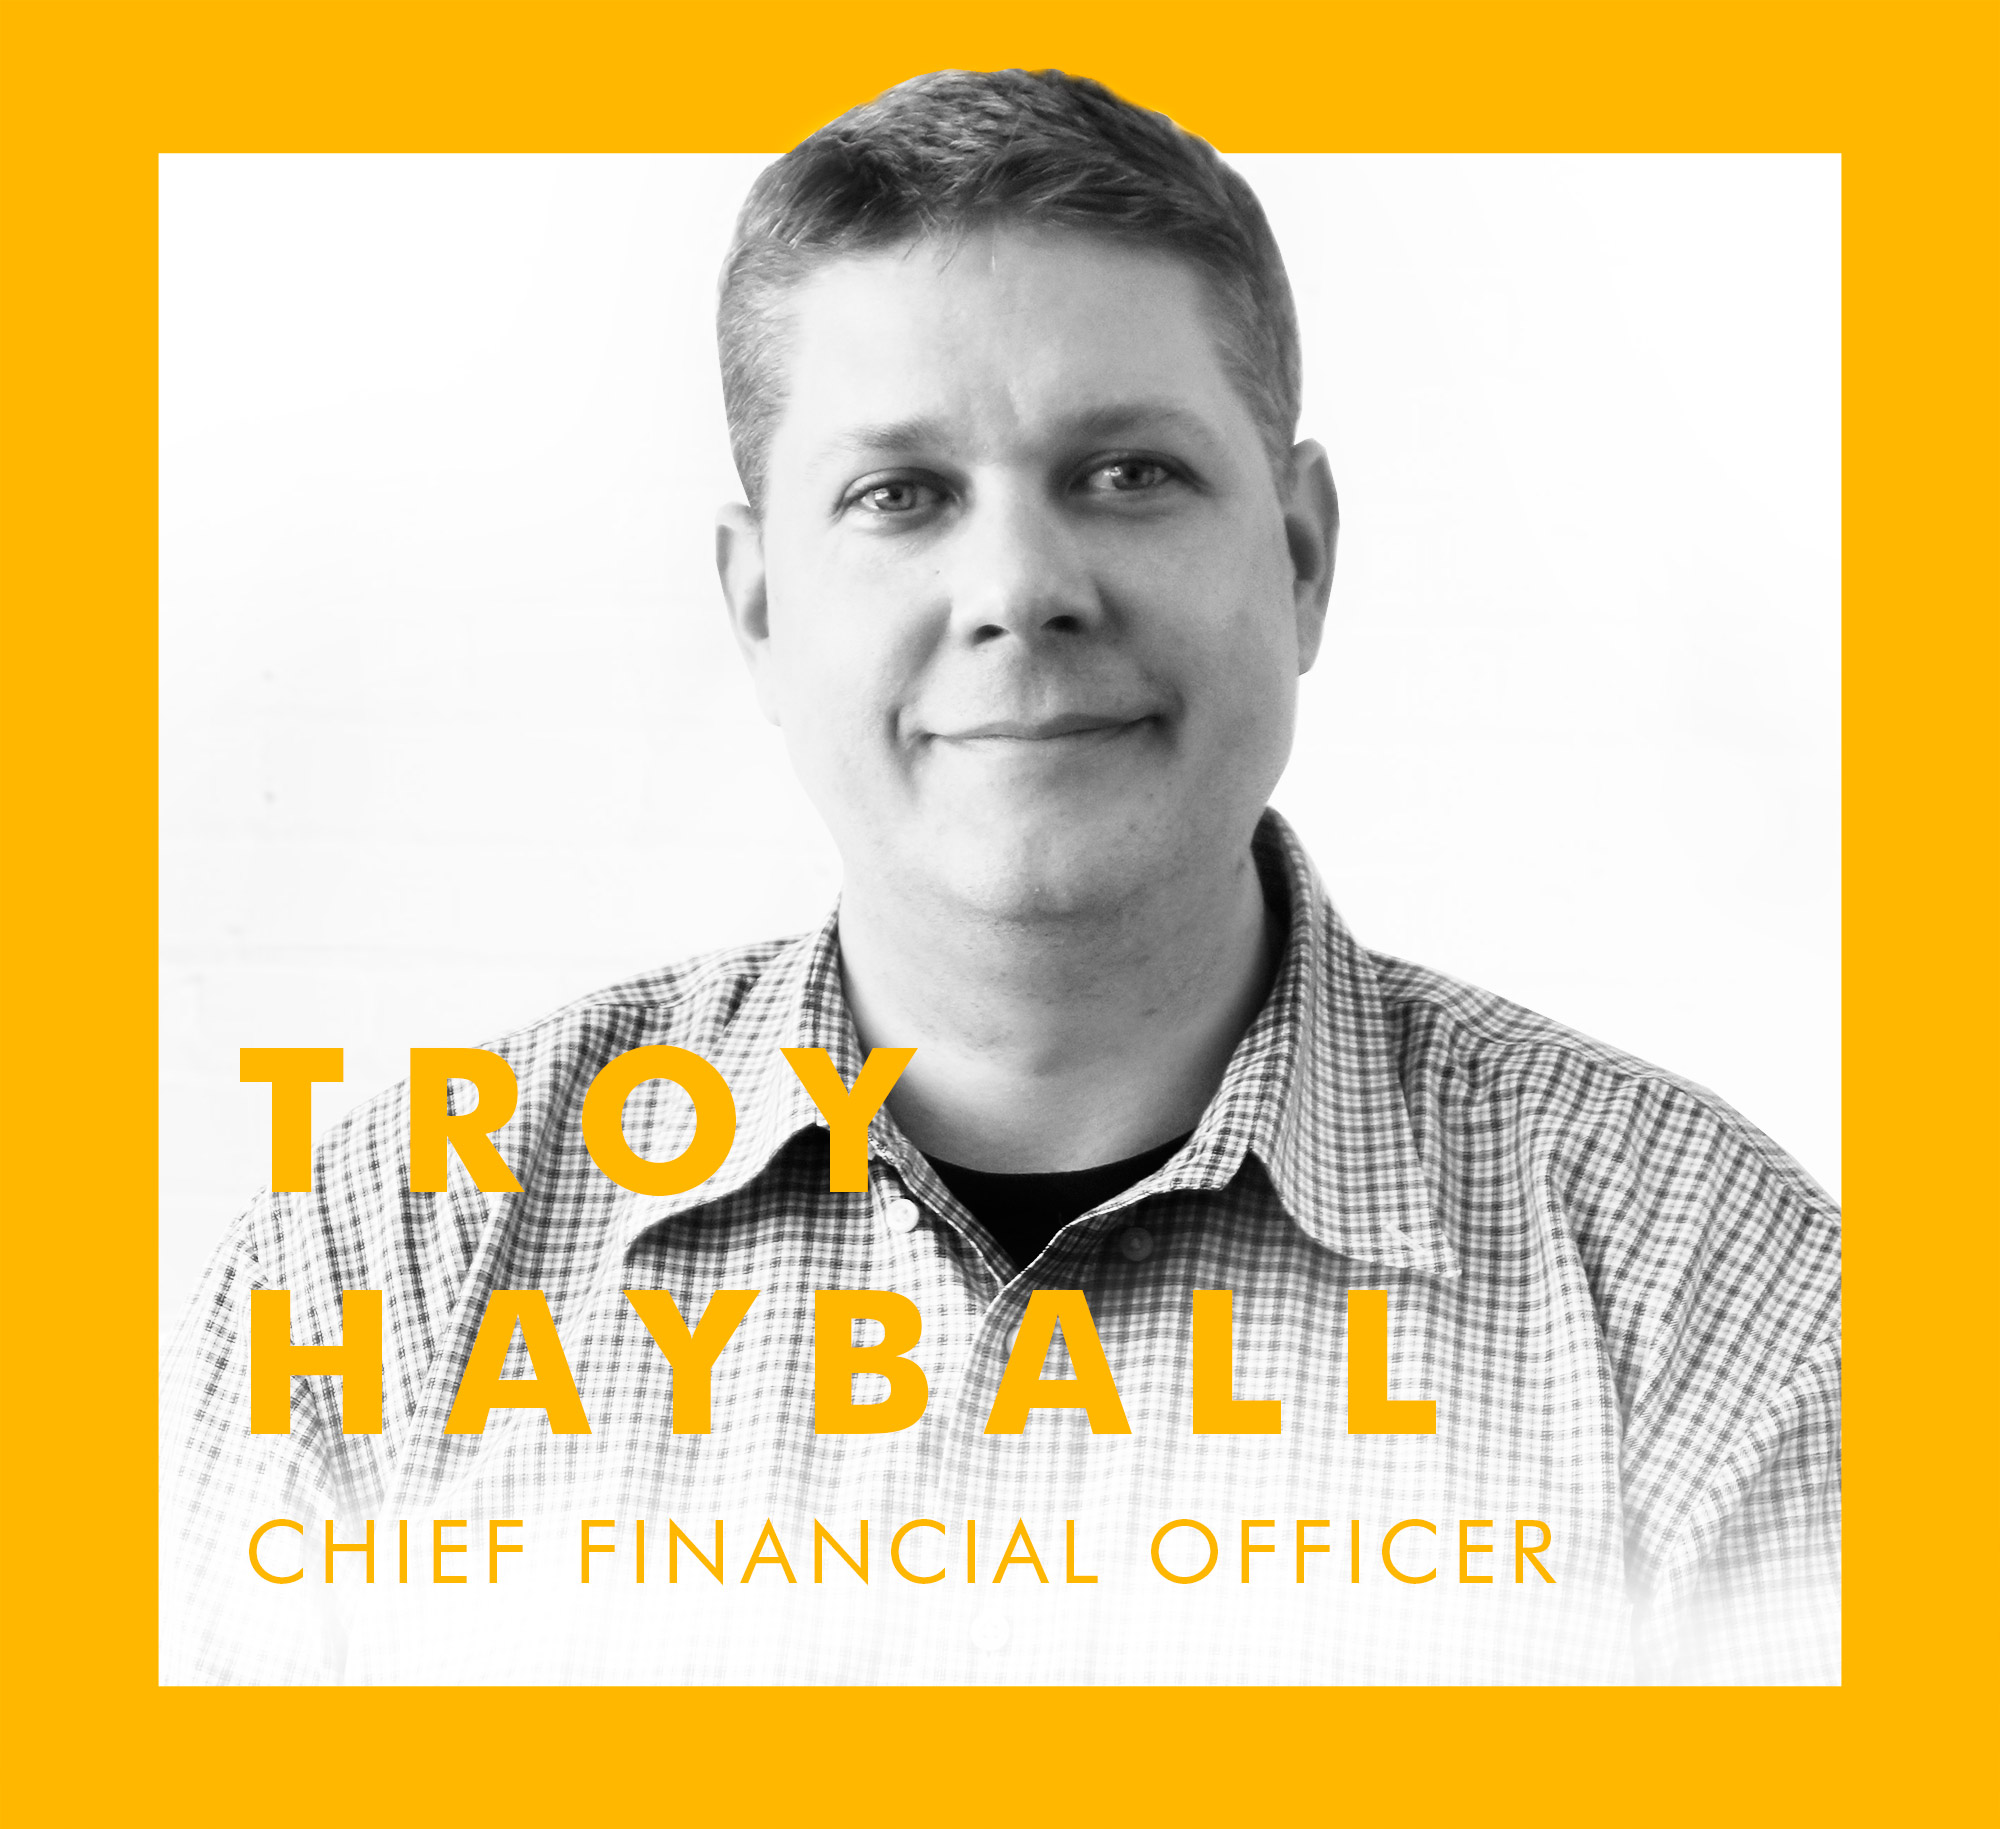 Don't let that friendly smile and demeanour fool you, our  Chief Financial Officer  runs our finance and ops departments with an iron fist, keeping us, and our clients, on top of the numbers.